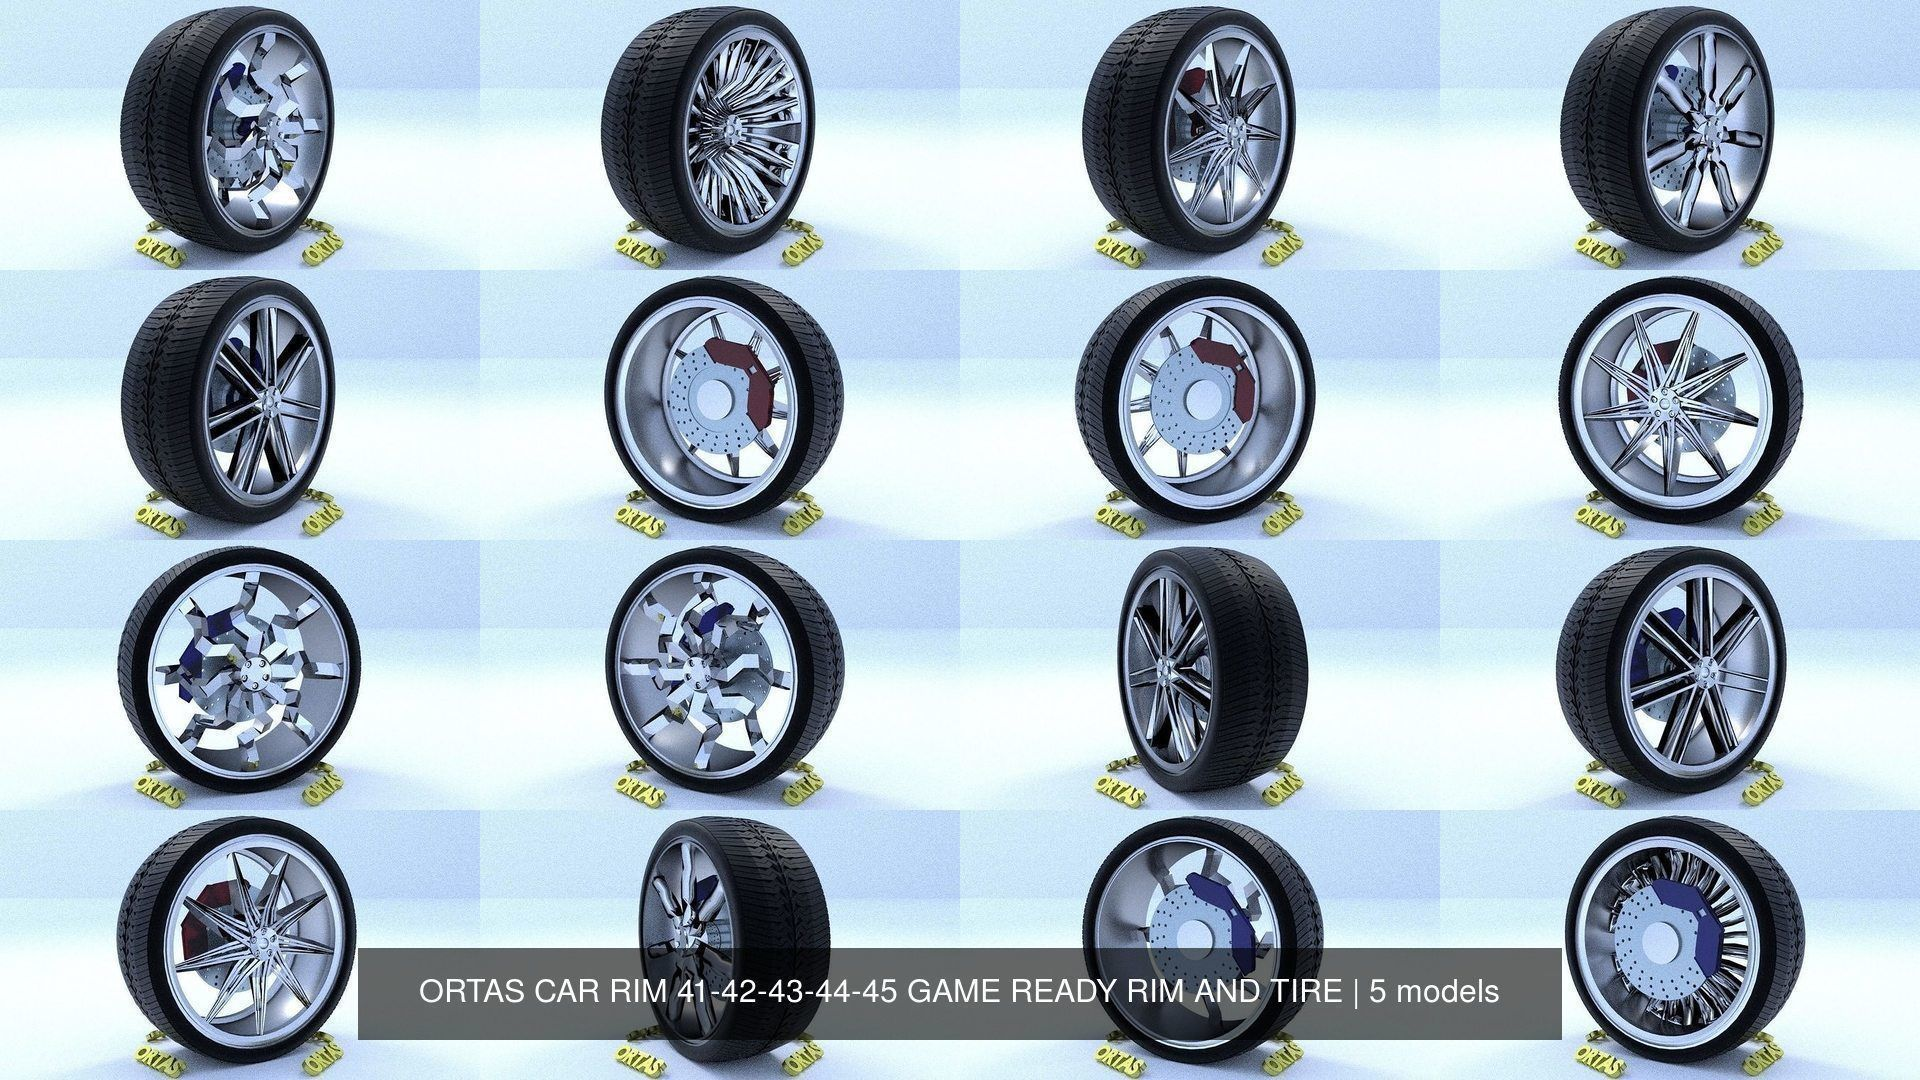 ORTAS CAR RIM 41-42-43-44-45 GAME READY RIM AND TIRE